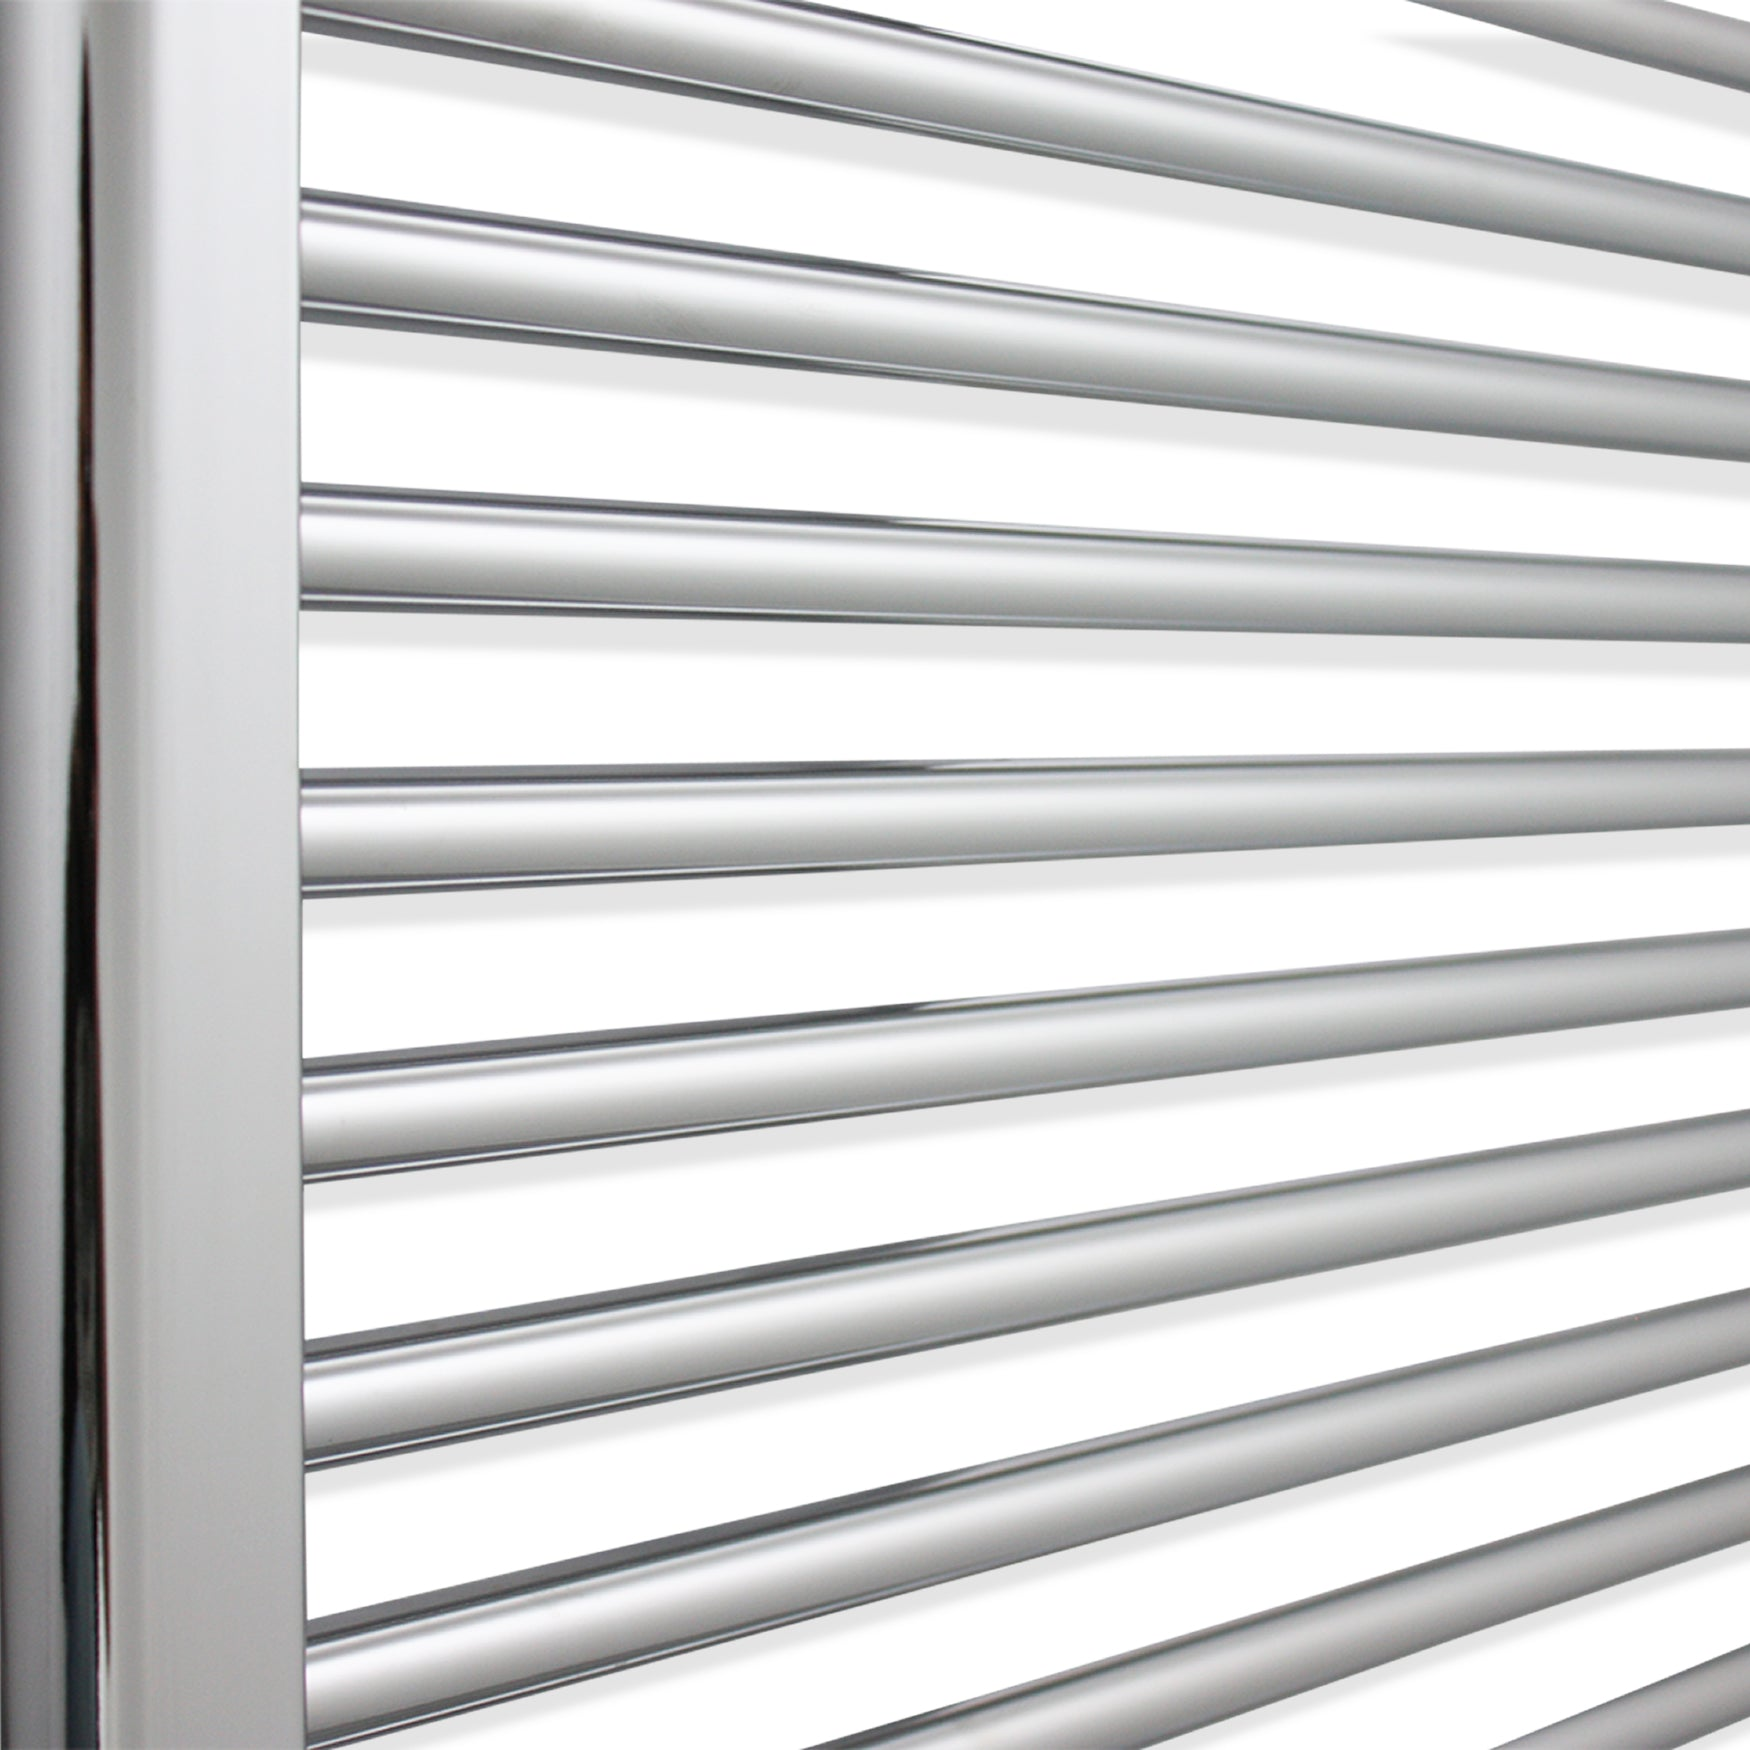 900mm Wide 600mm High Flat Chrome Heated Towel Rail Radiator HTR